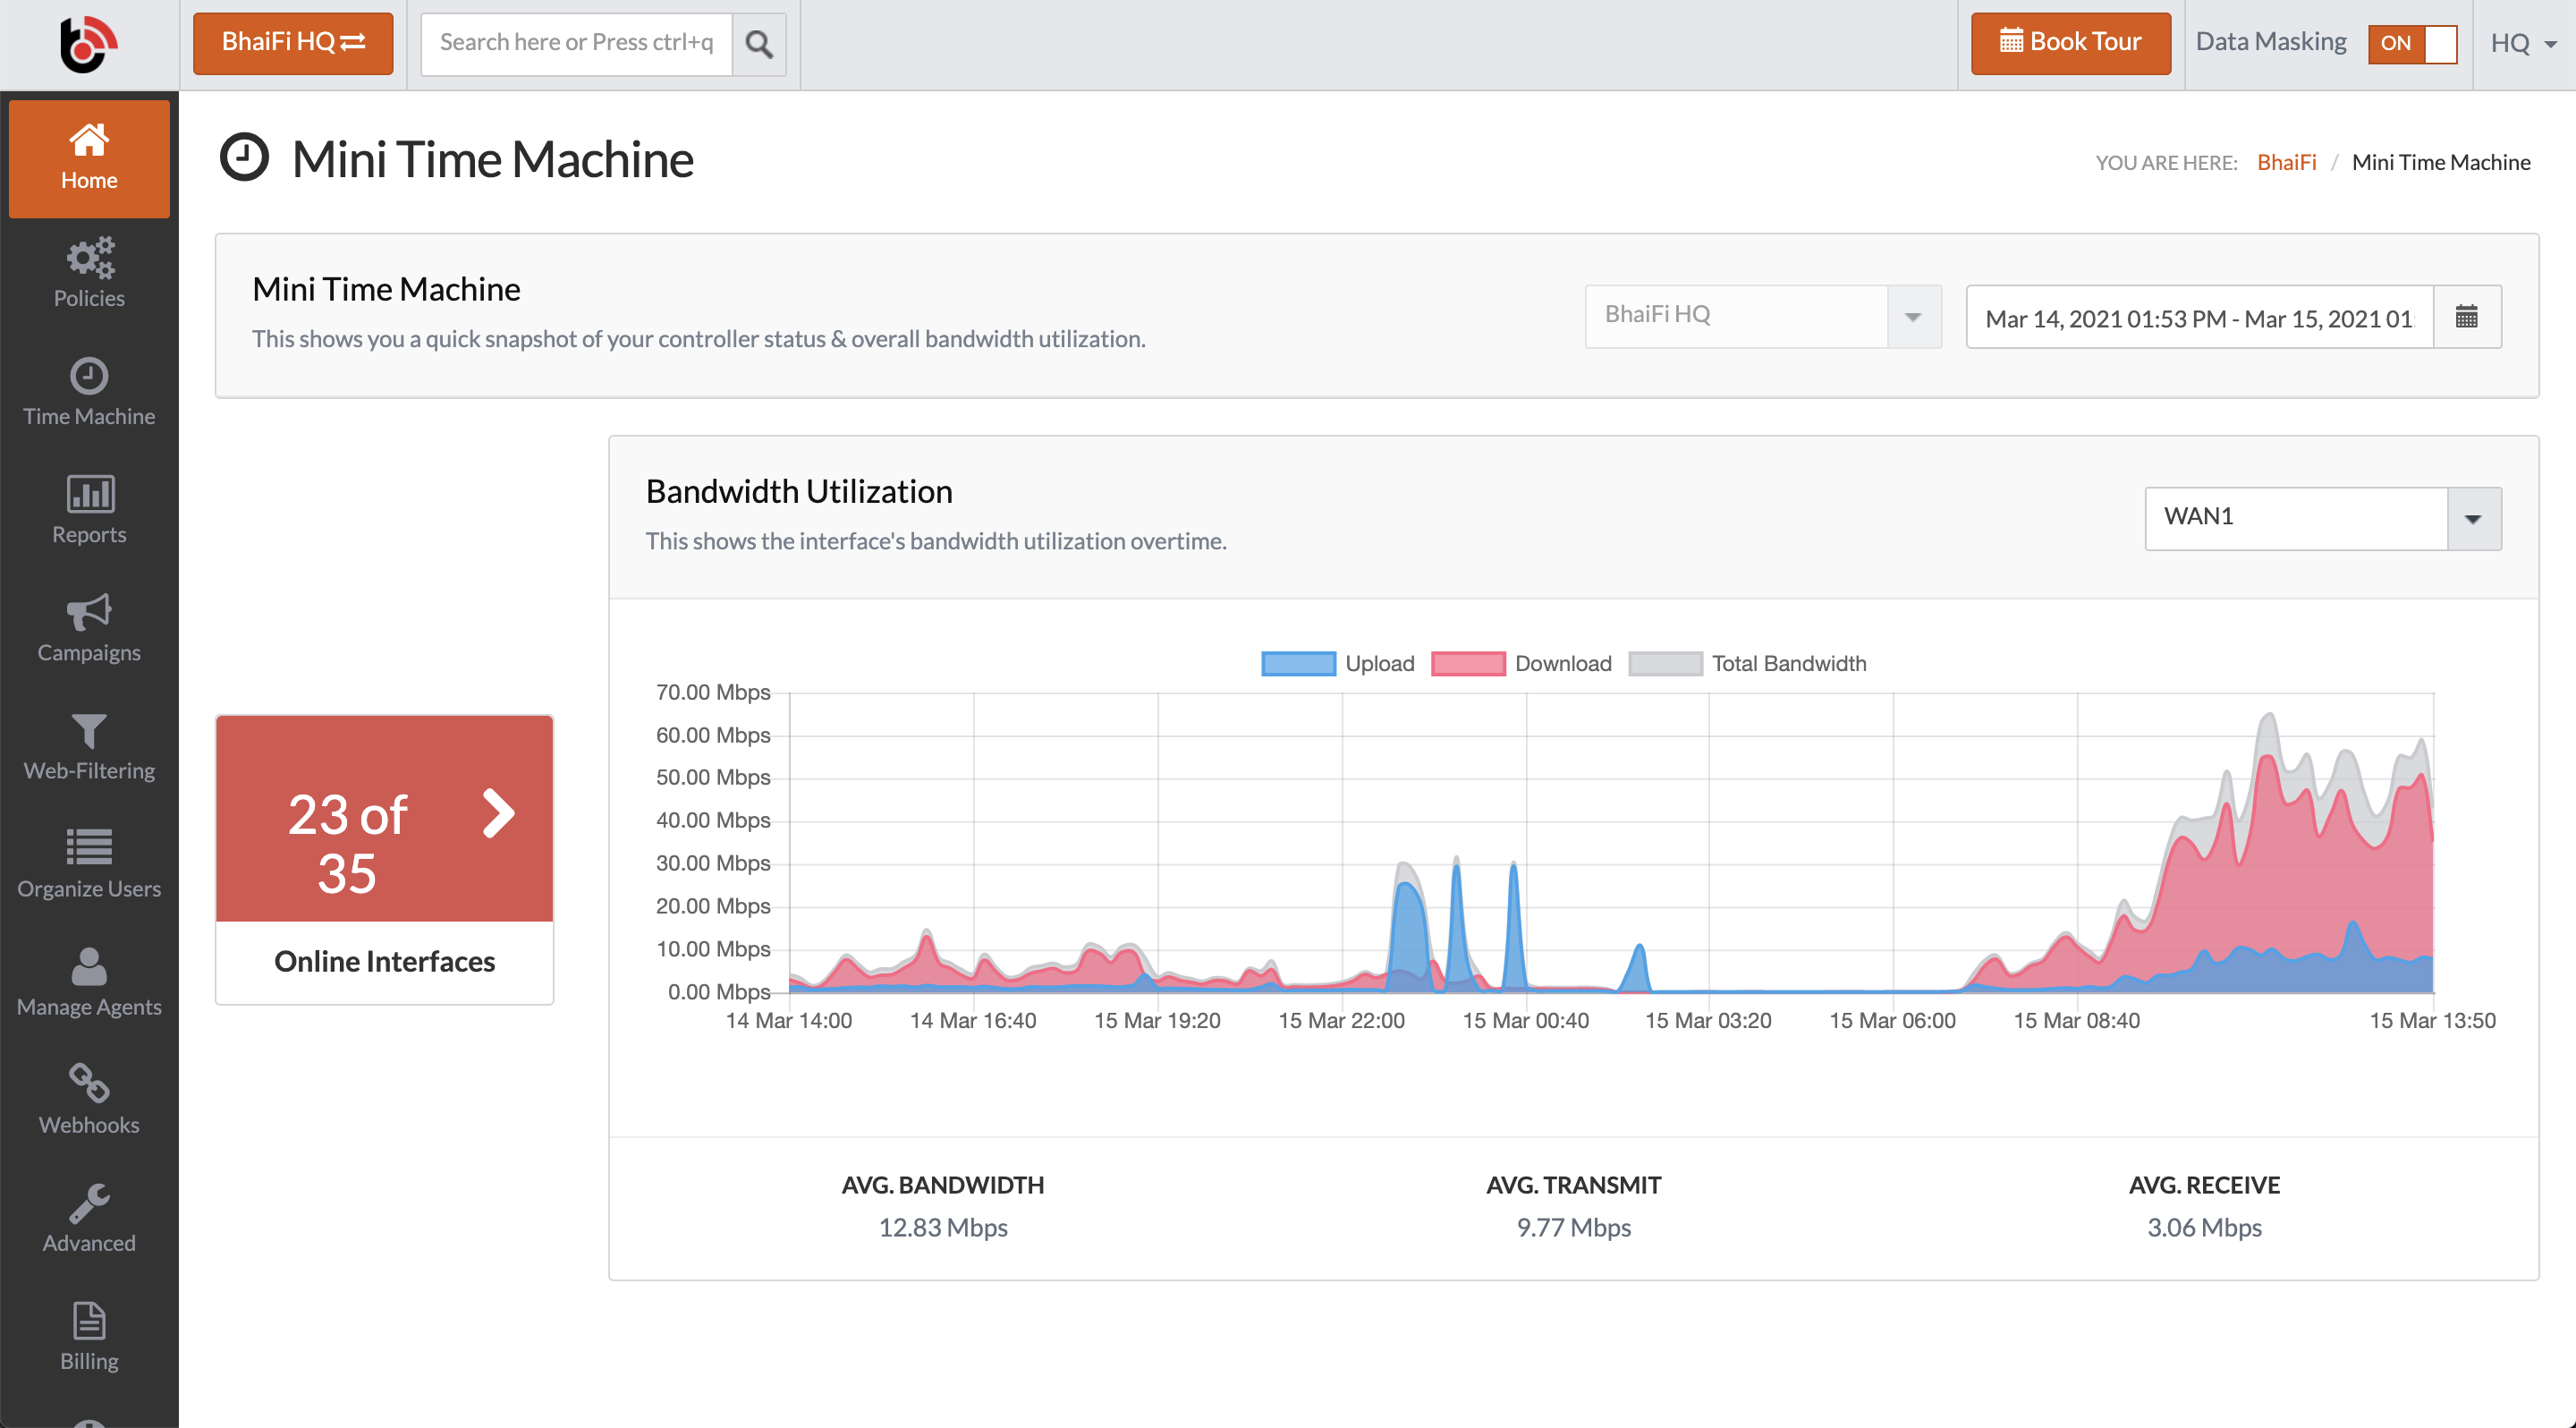 Have you been running your network on guestimates? Not any more. Get real-time analytics & take data-driven decision to deliver the right experience & reducing your costs for unused resources.